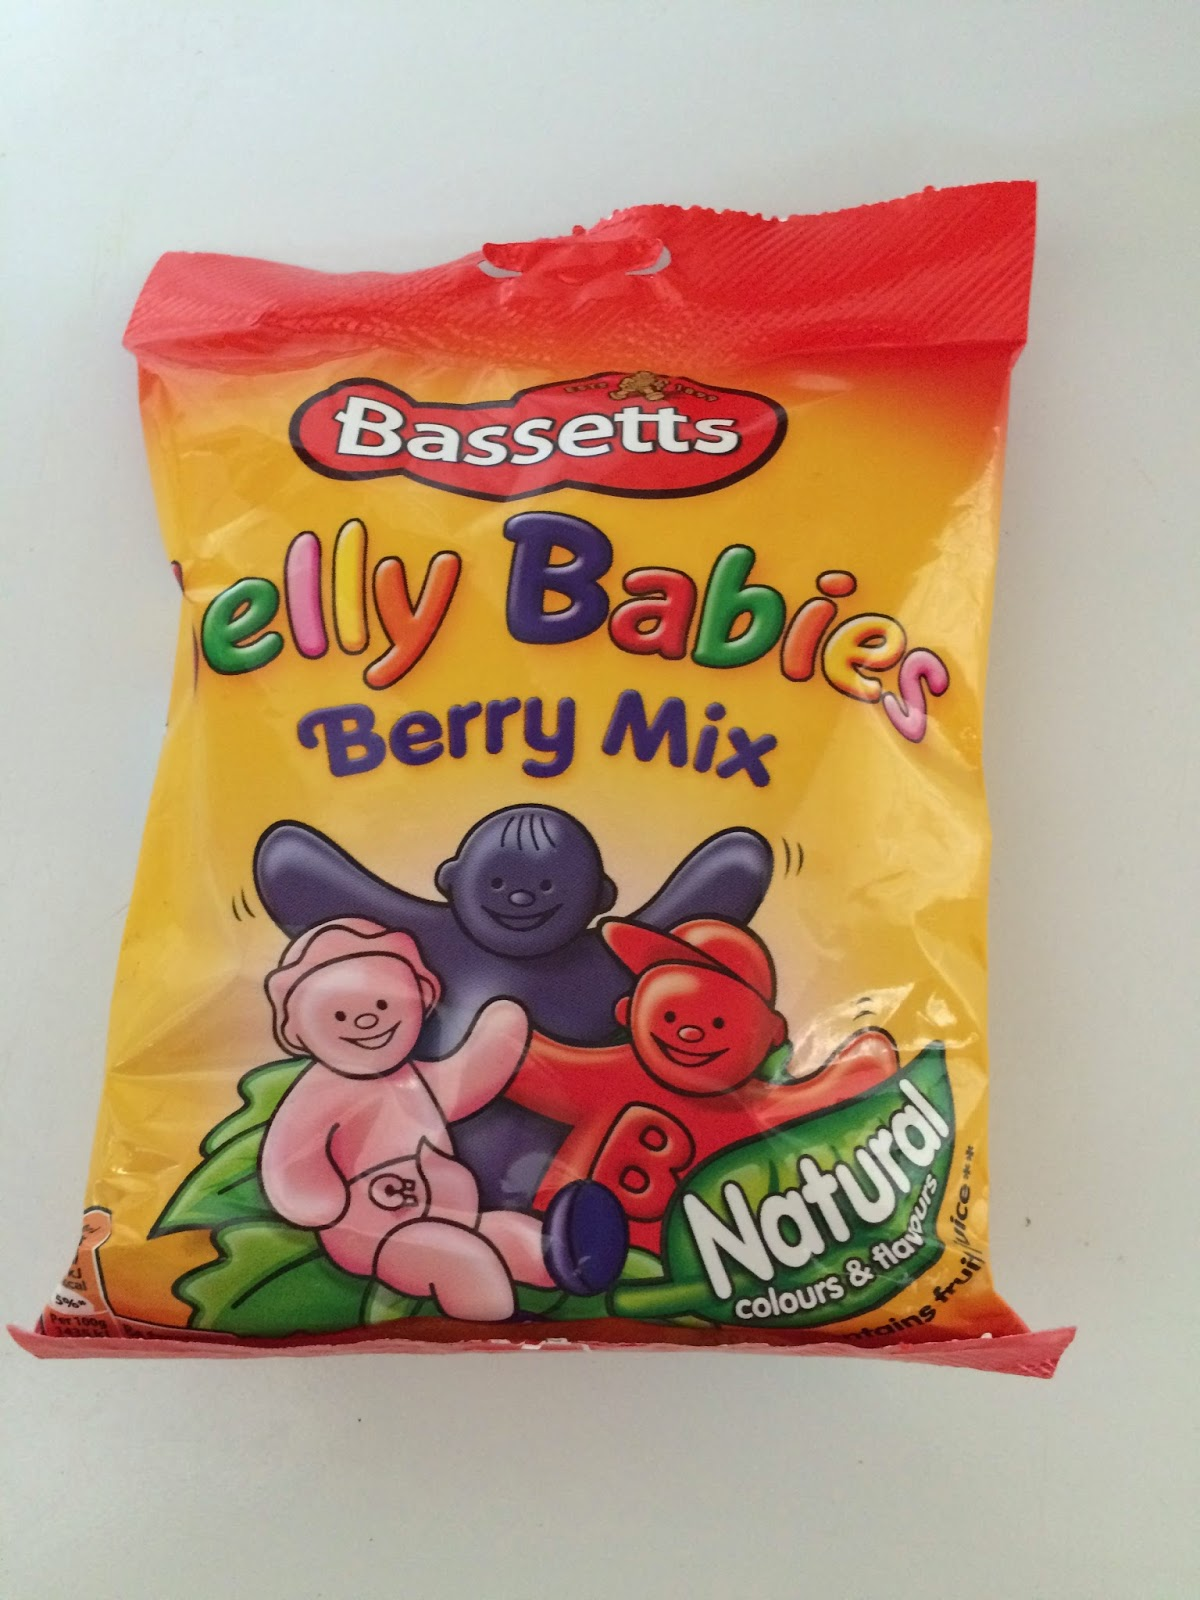 one bag of Bassetts jelly baby sweets